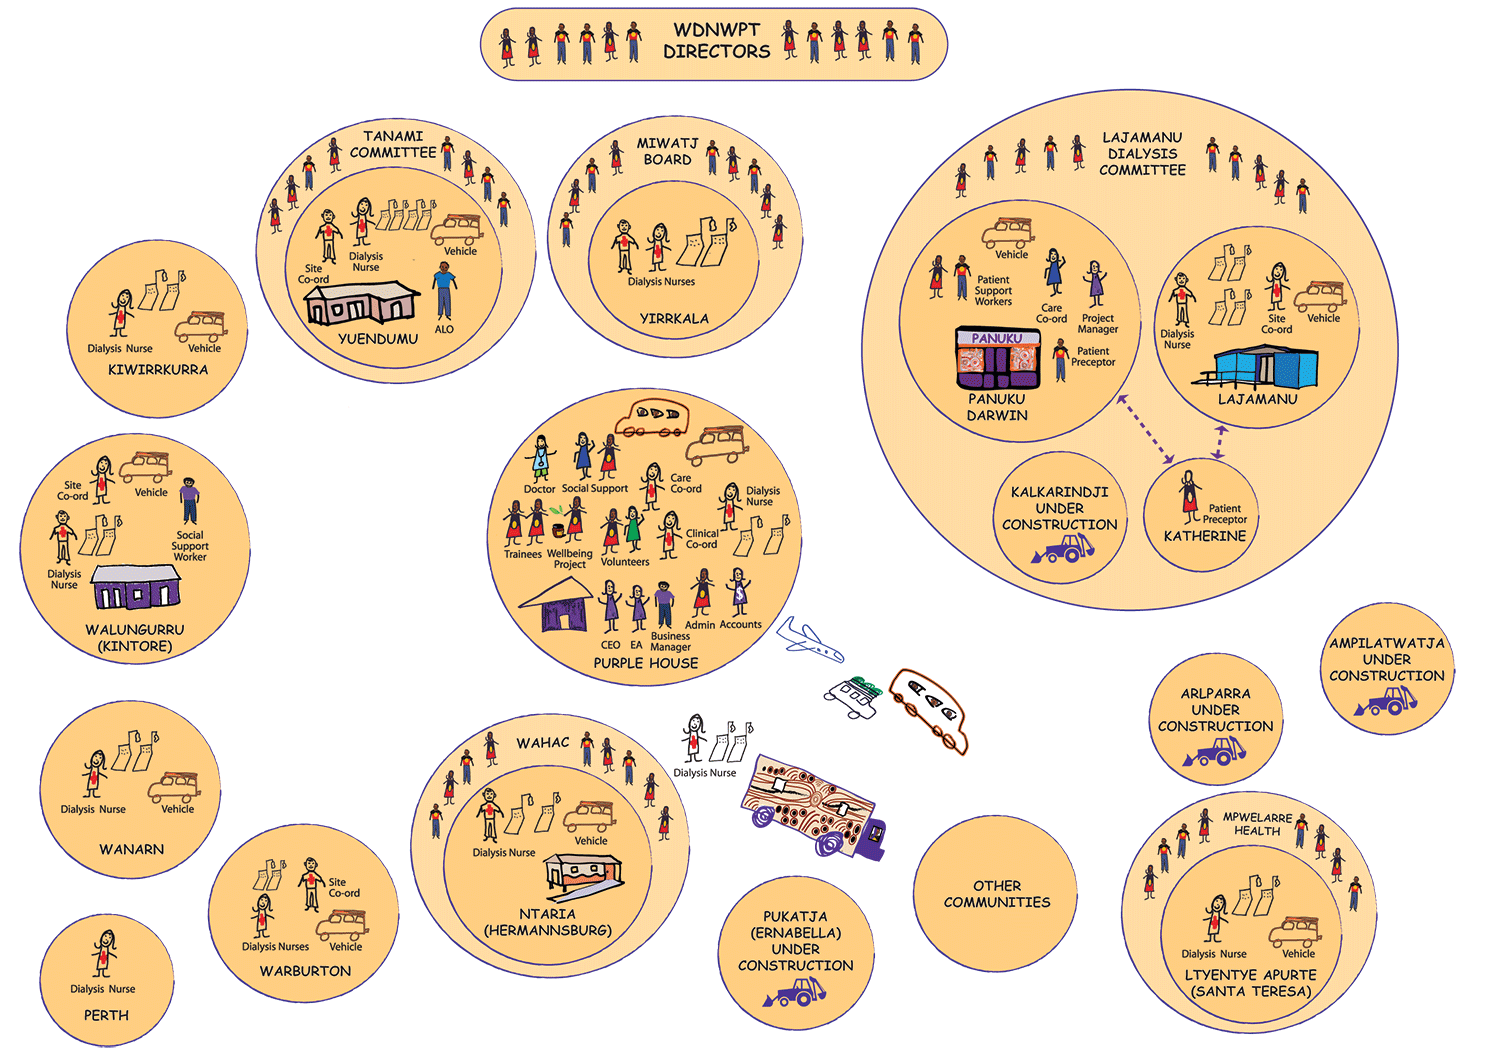 Diagram of Western Desert Dialysis service in 18 locations